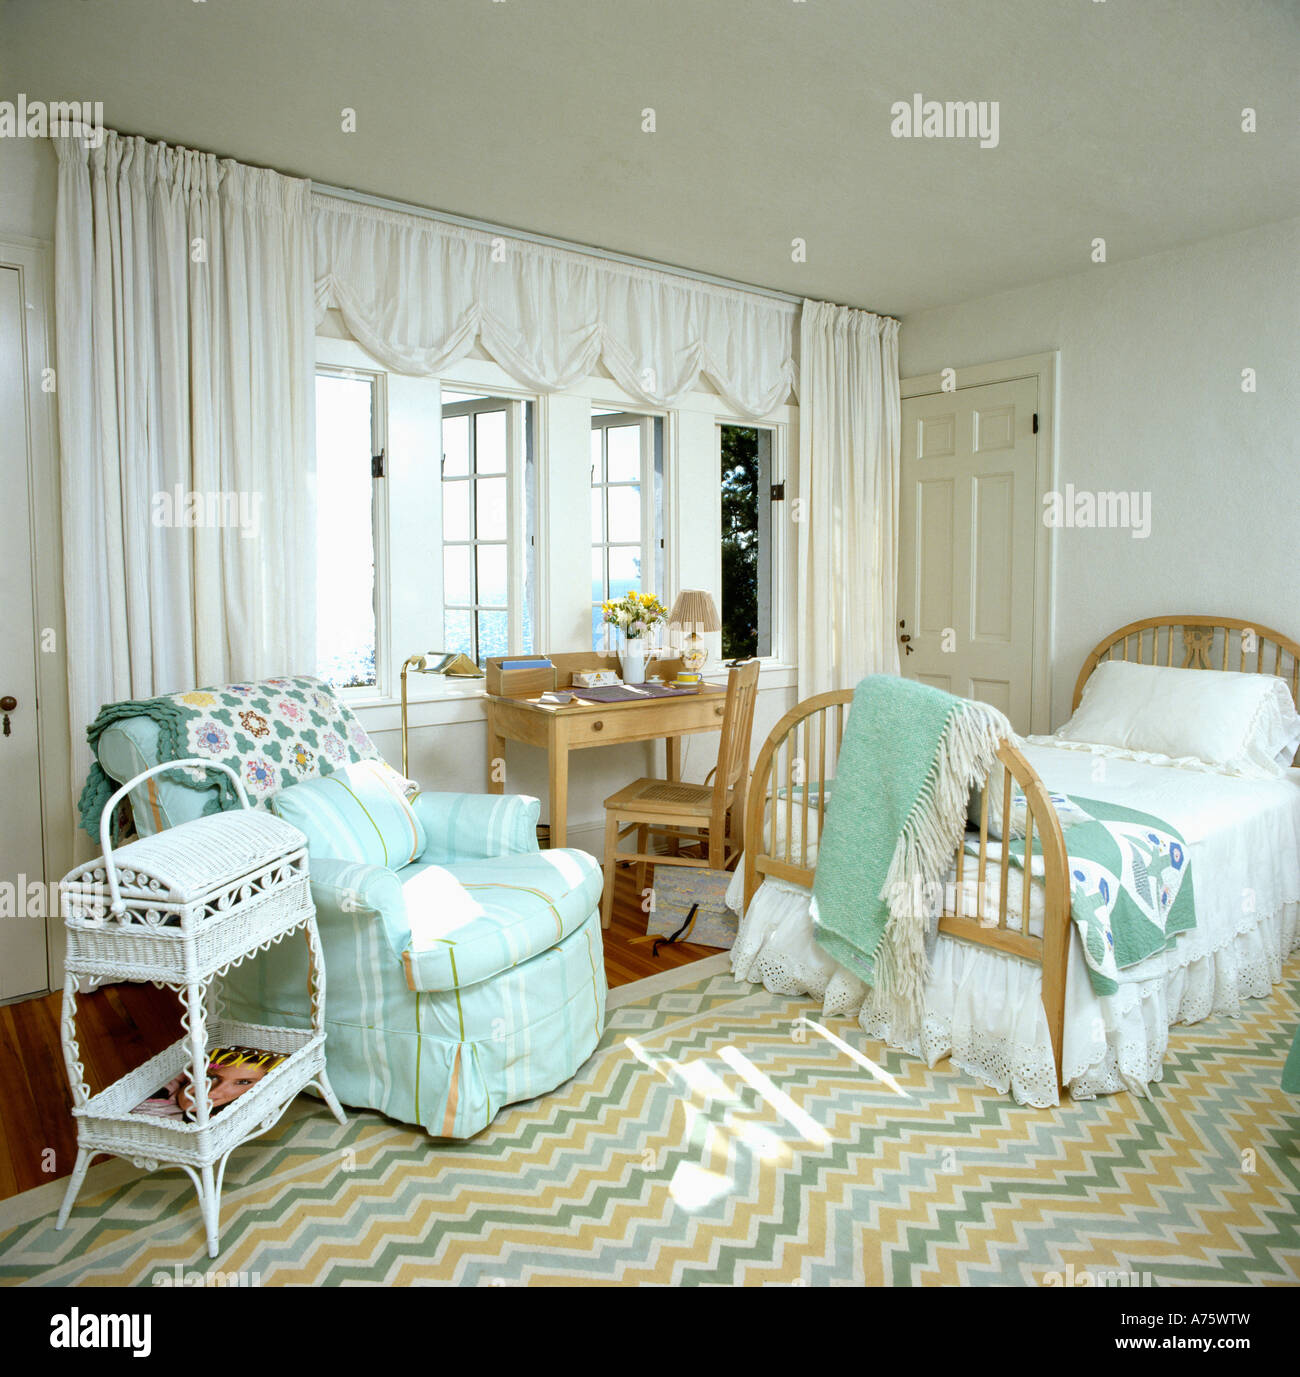 Seaside bedroom with turquoise loosecover on armchair and ...